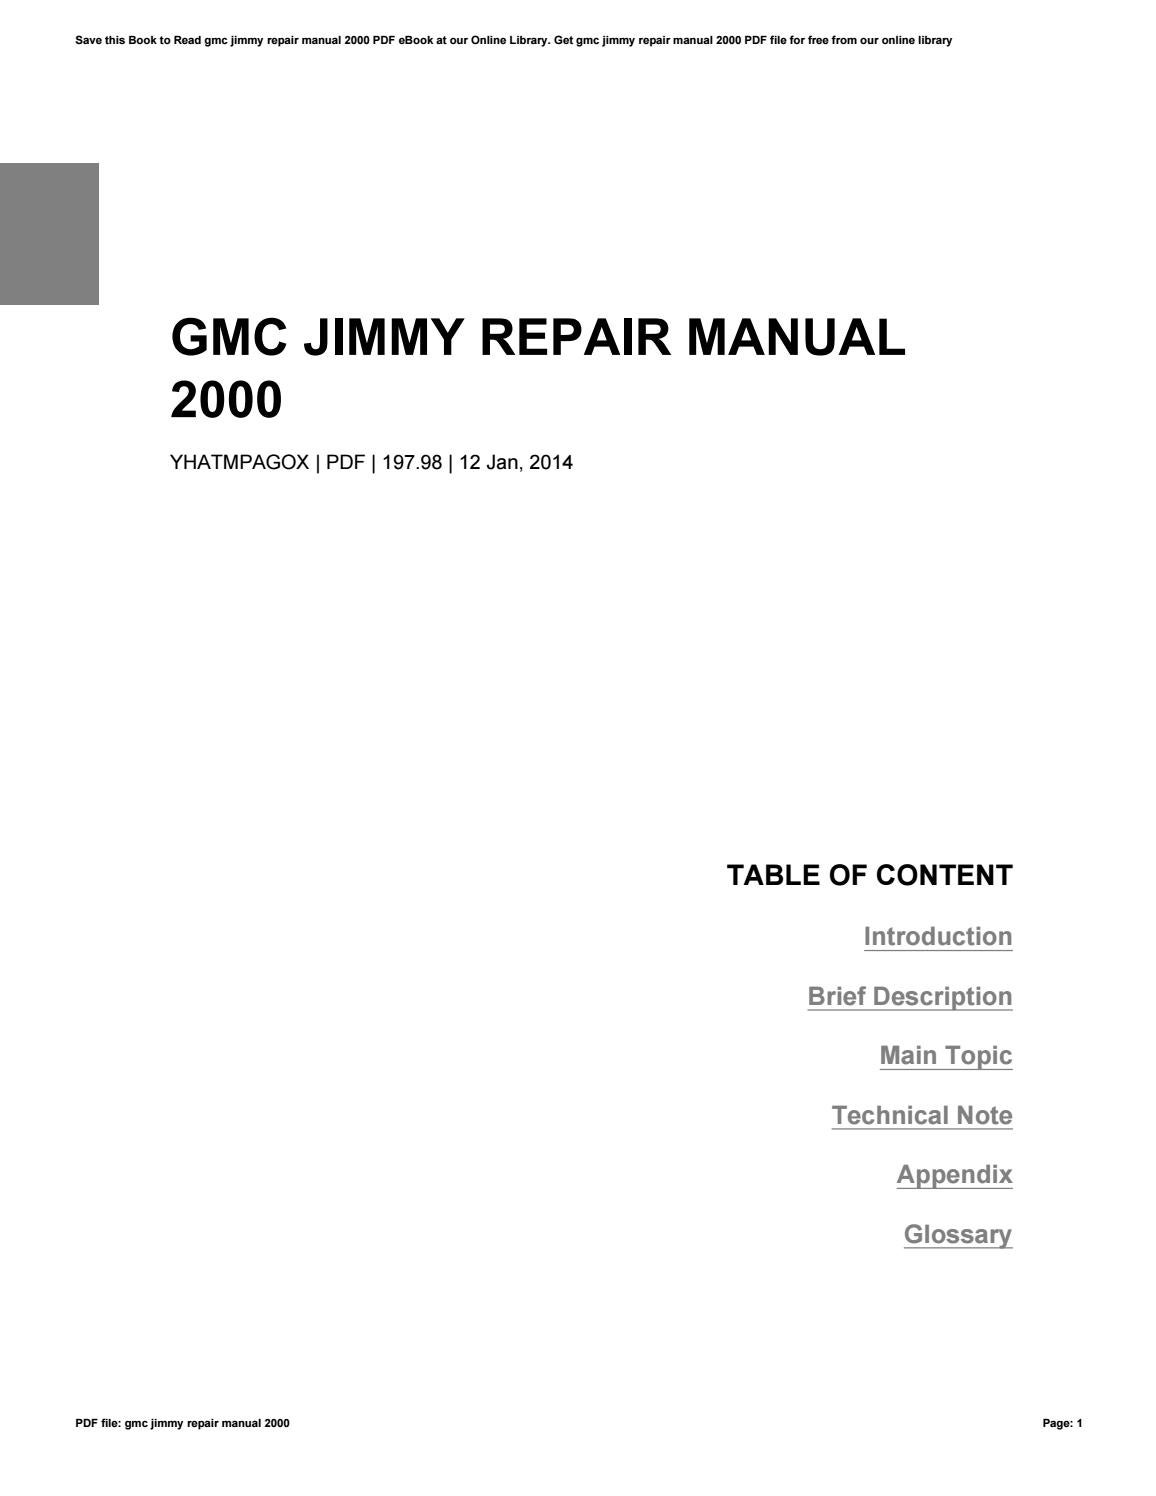 Gmc Jimmy Manual 2000 Pdf : Chevrolet S 10 Wikipedia